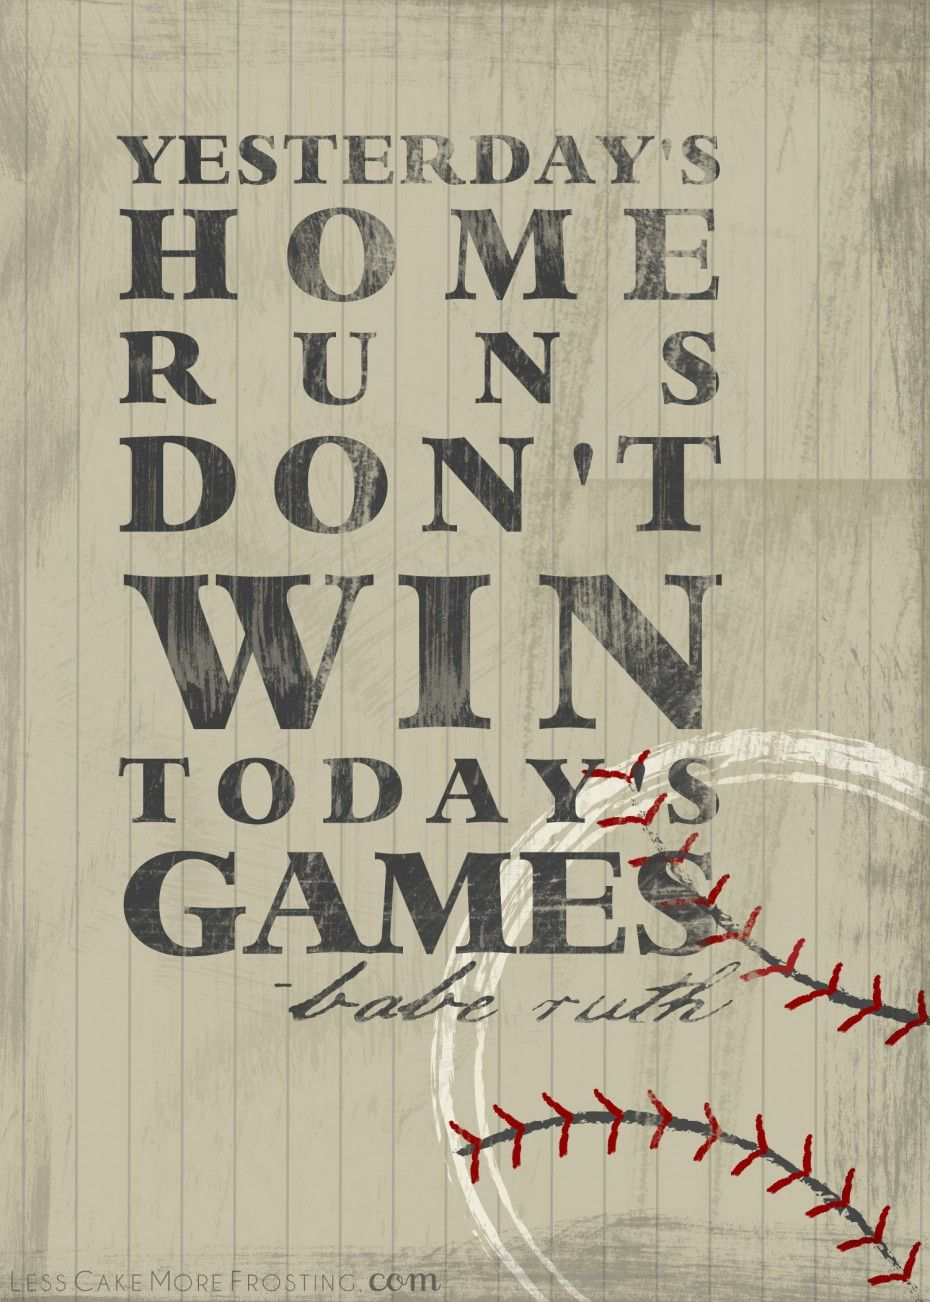 Baseball Quotes About Life Yesterday's Homeruns Don't Win Today's Baseball Games  Mitzvah